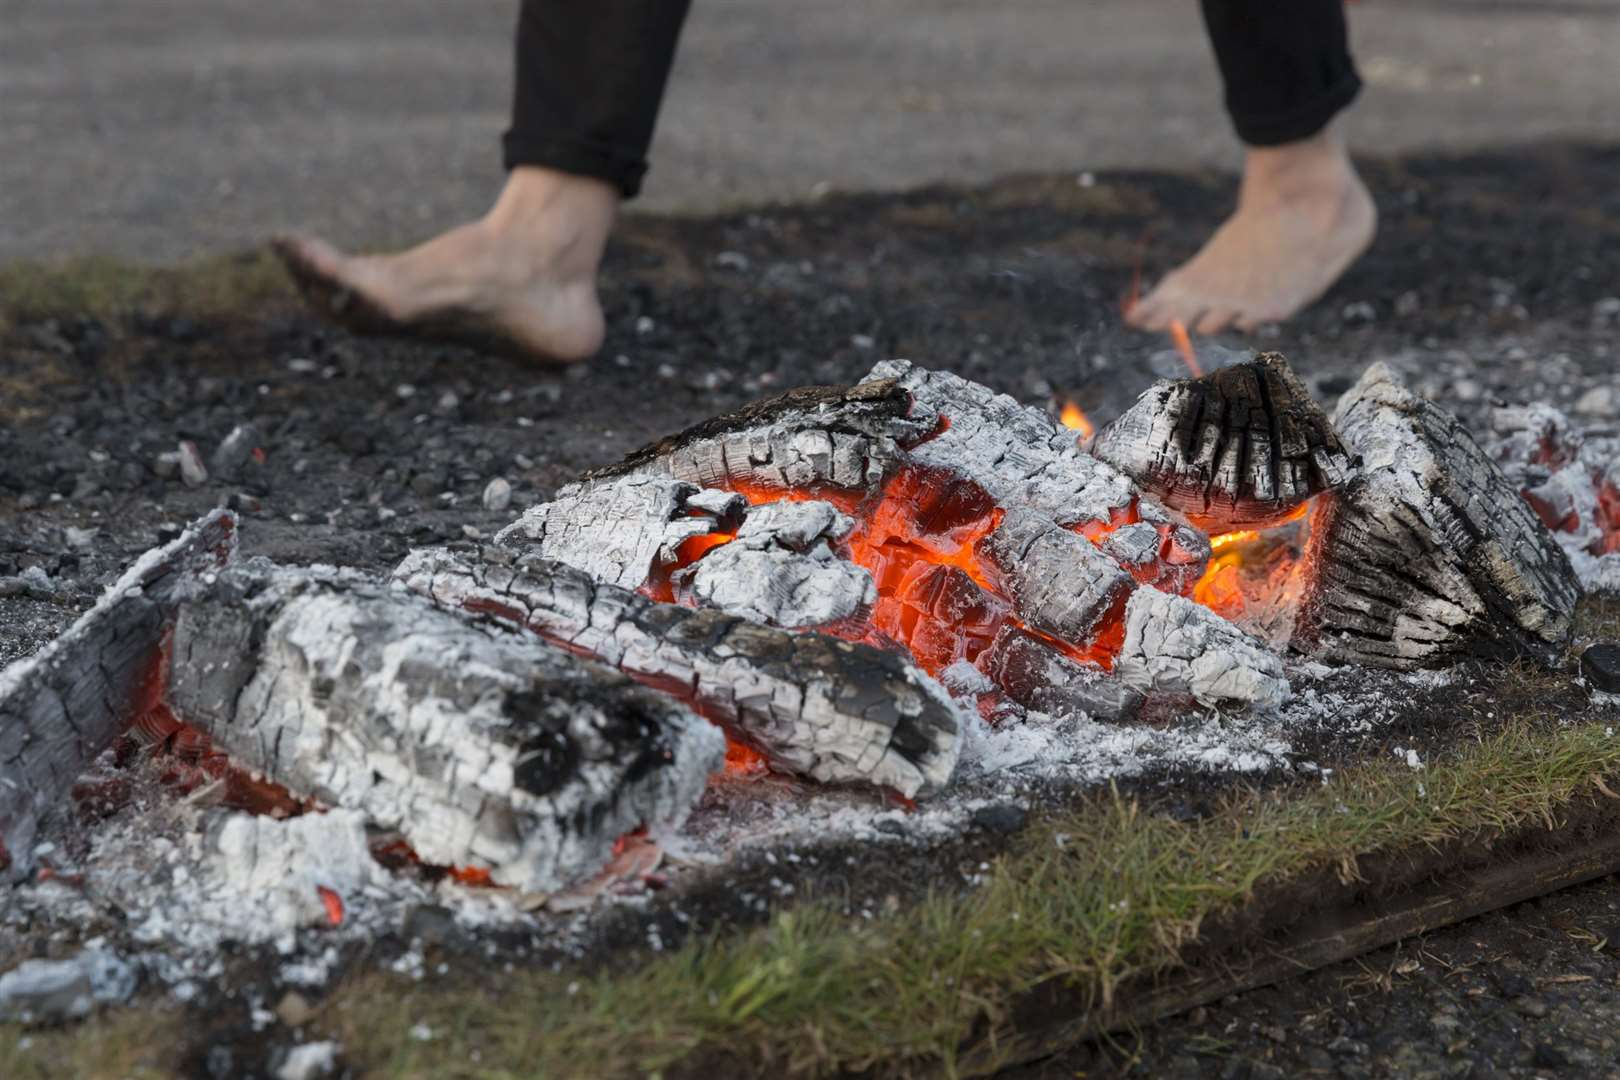 The firewalk takes place on Sunday, September 29